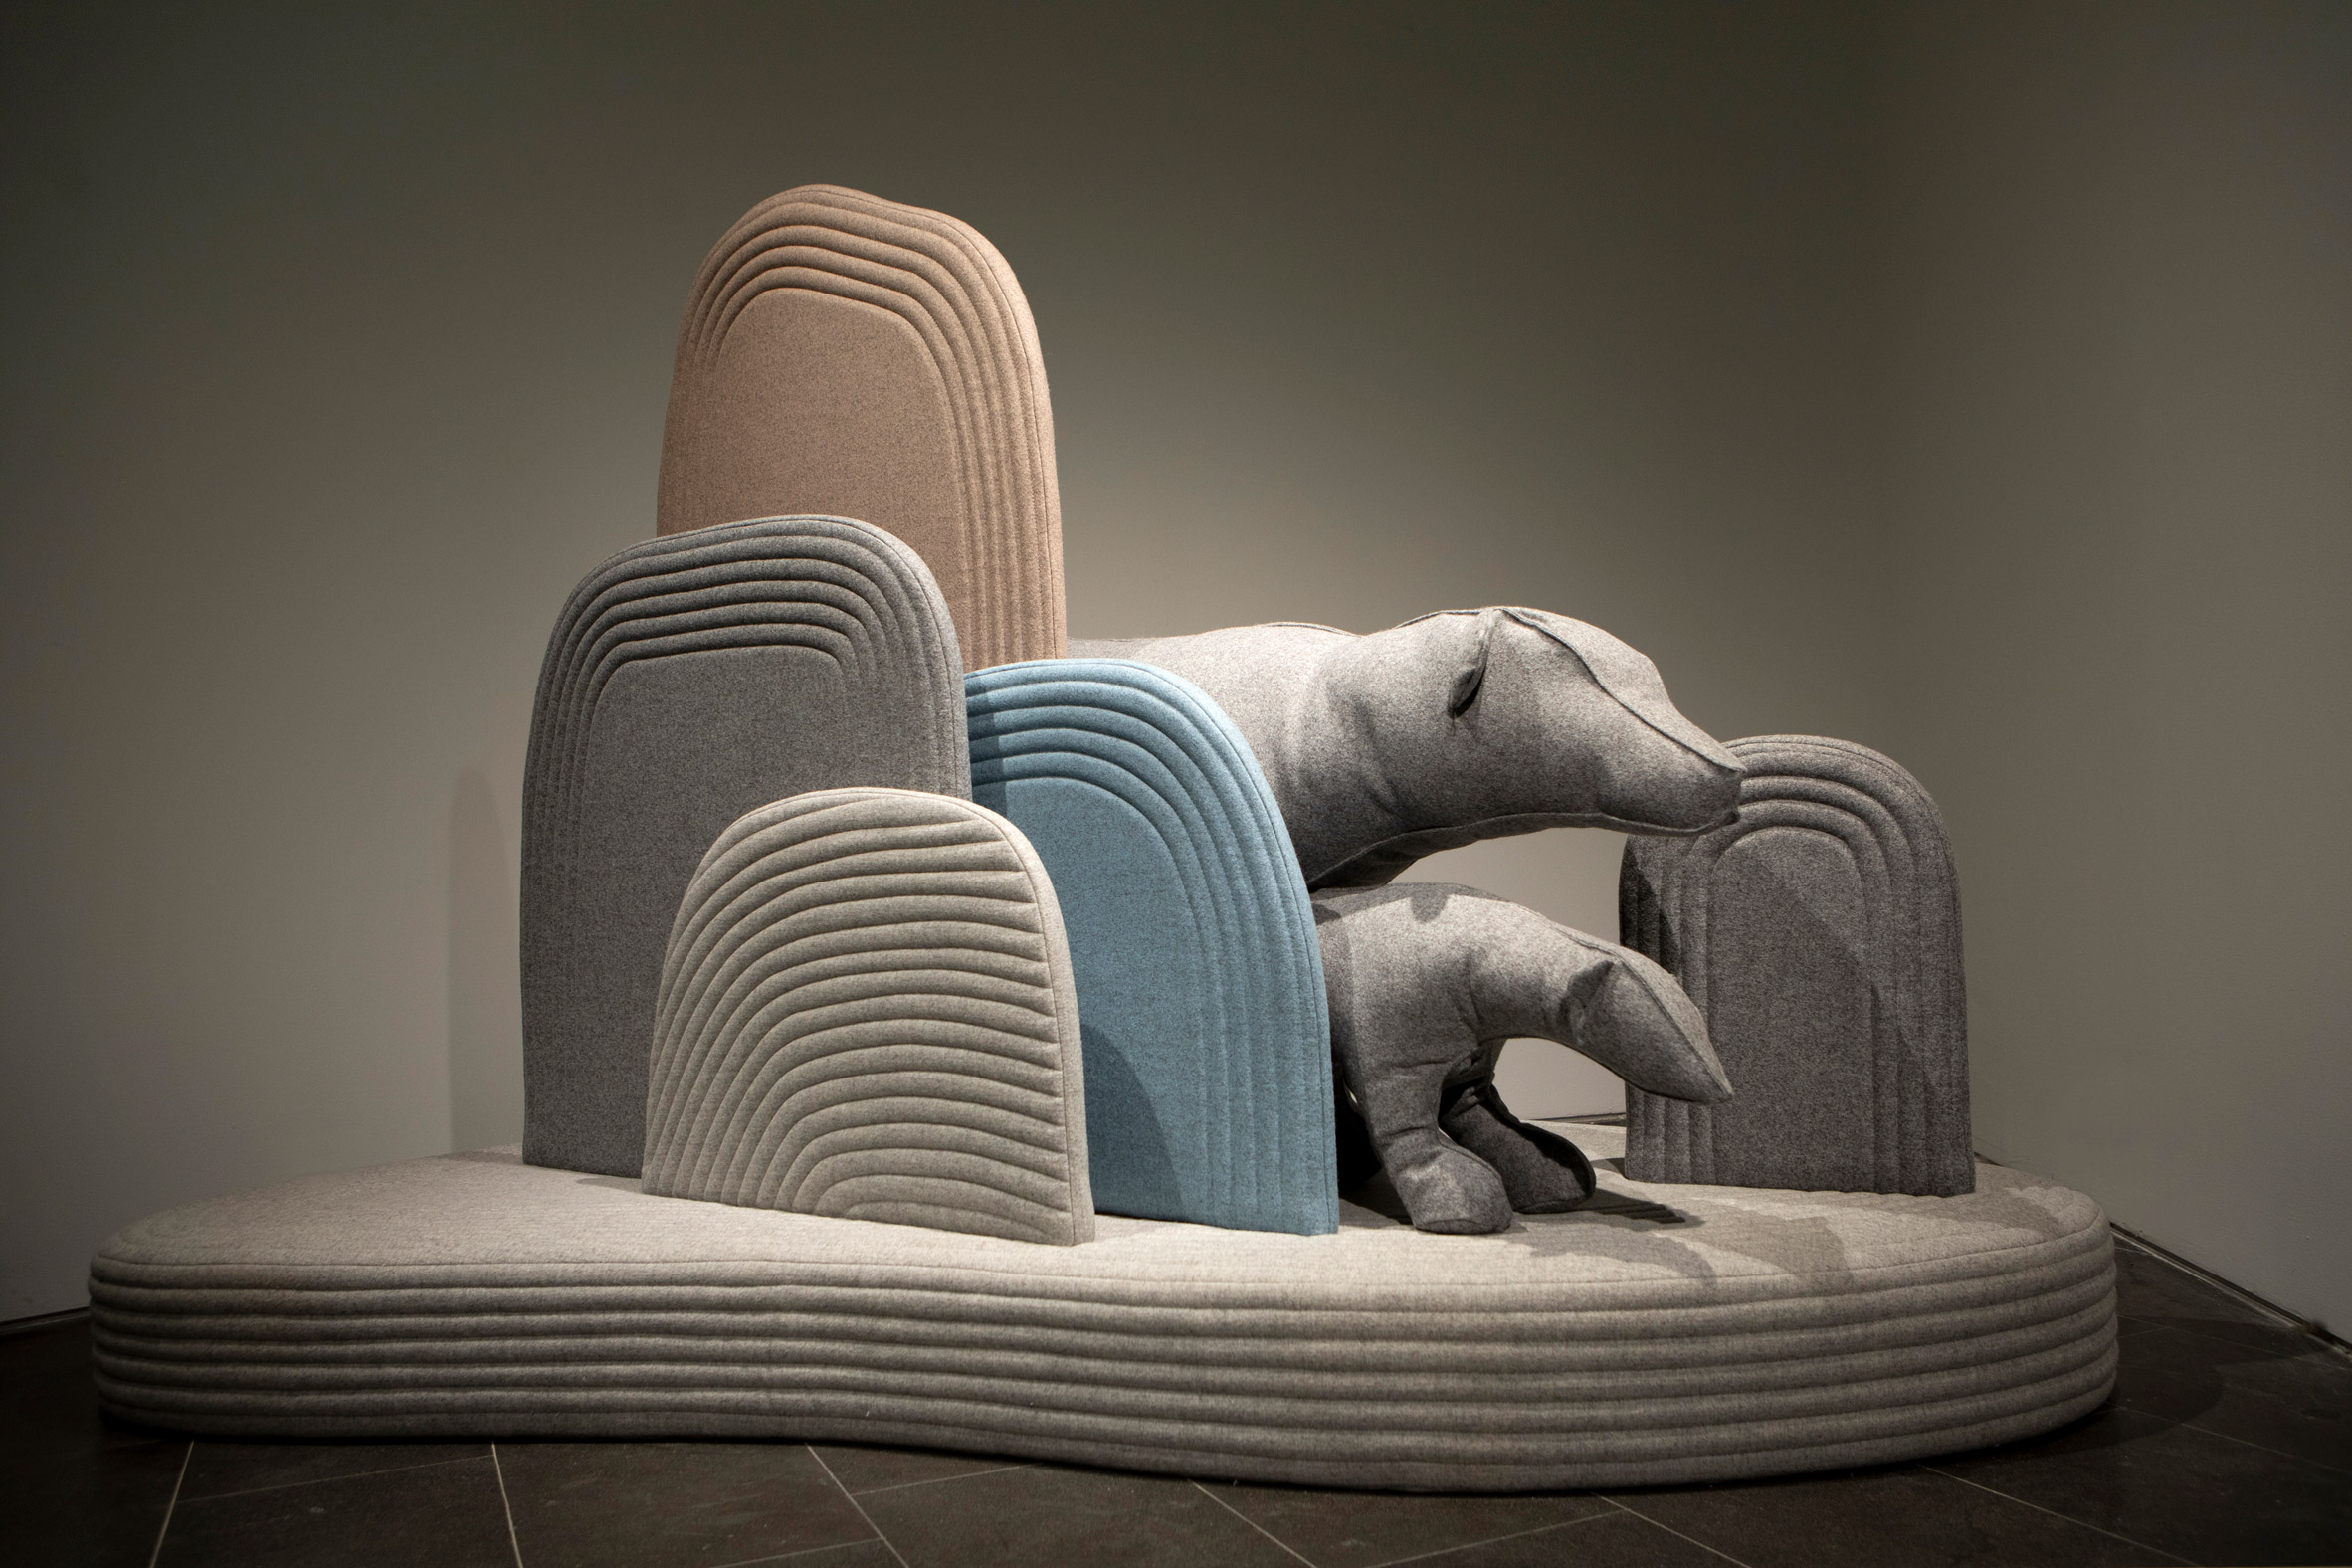 Grey and blue-coloured wool sculptures